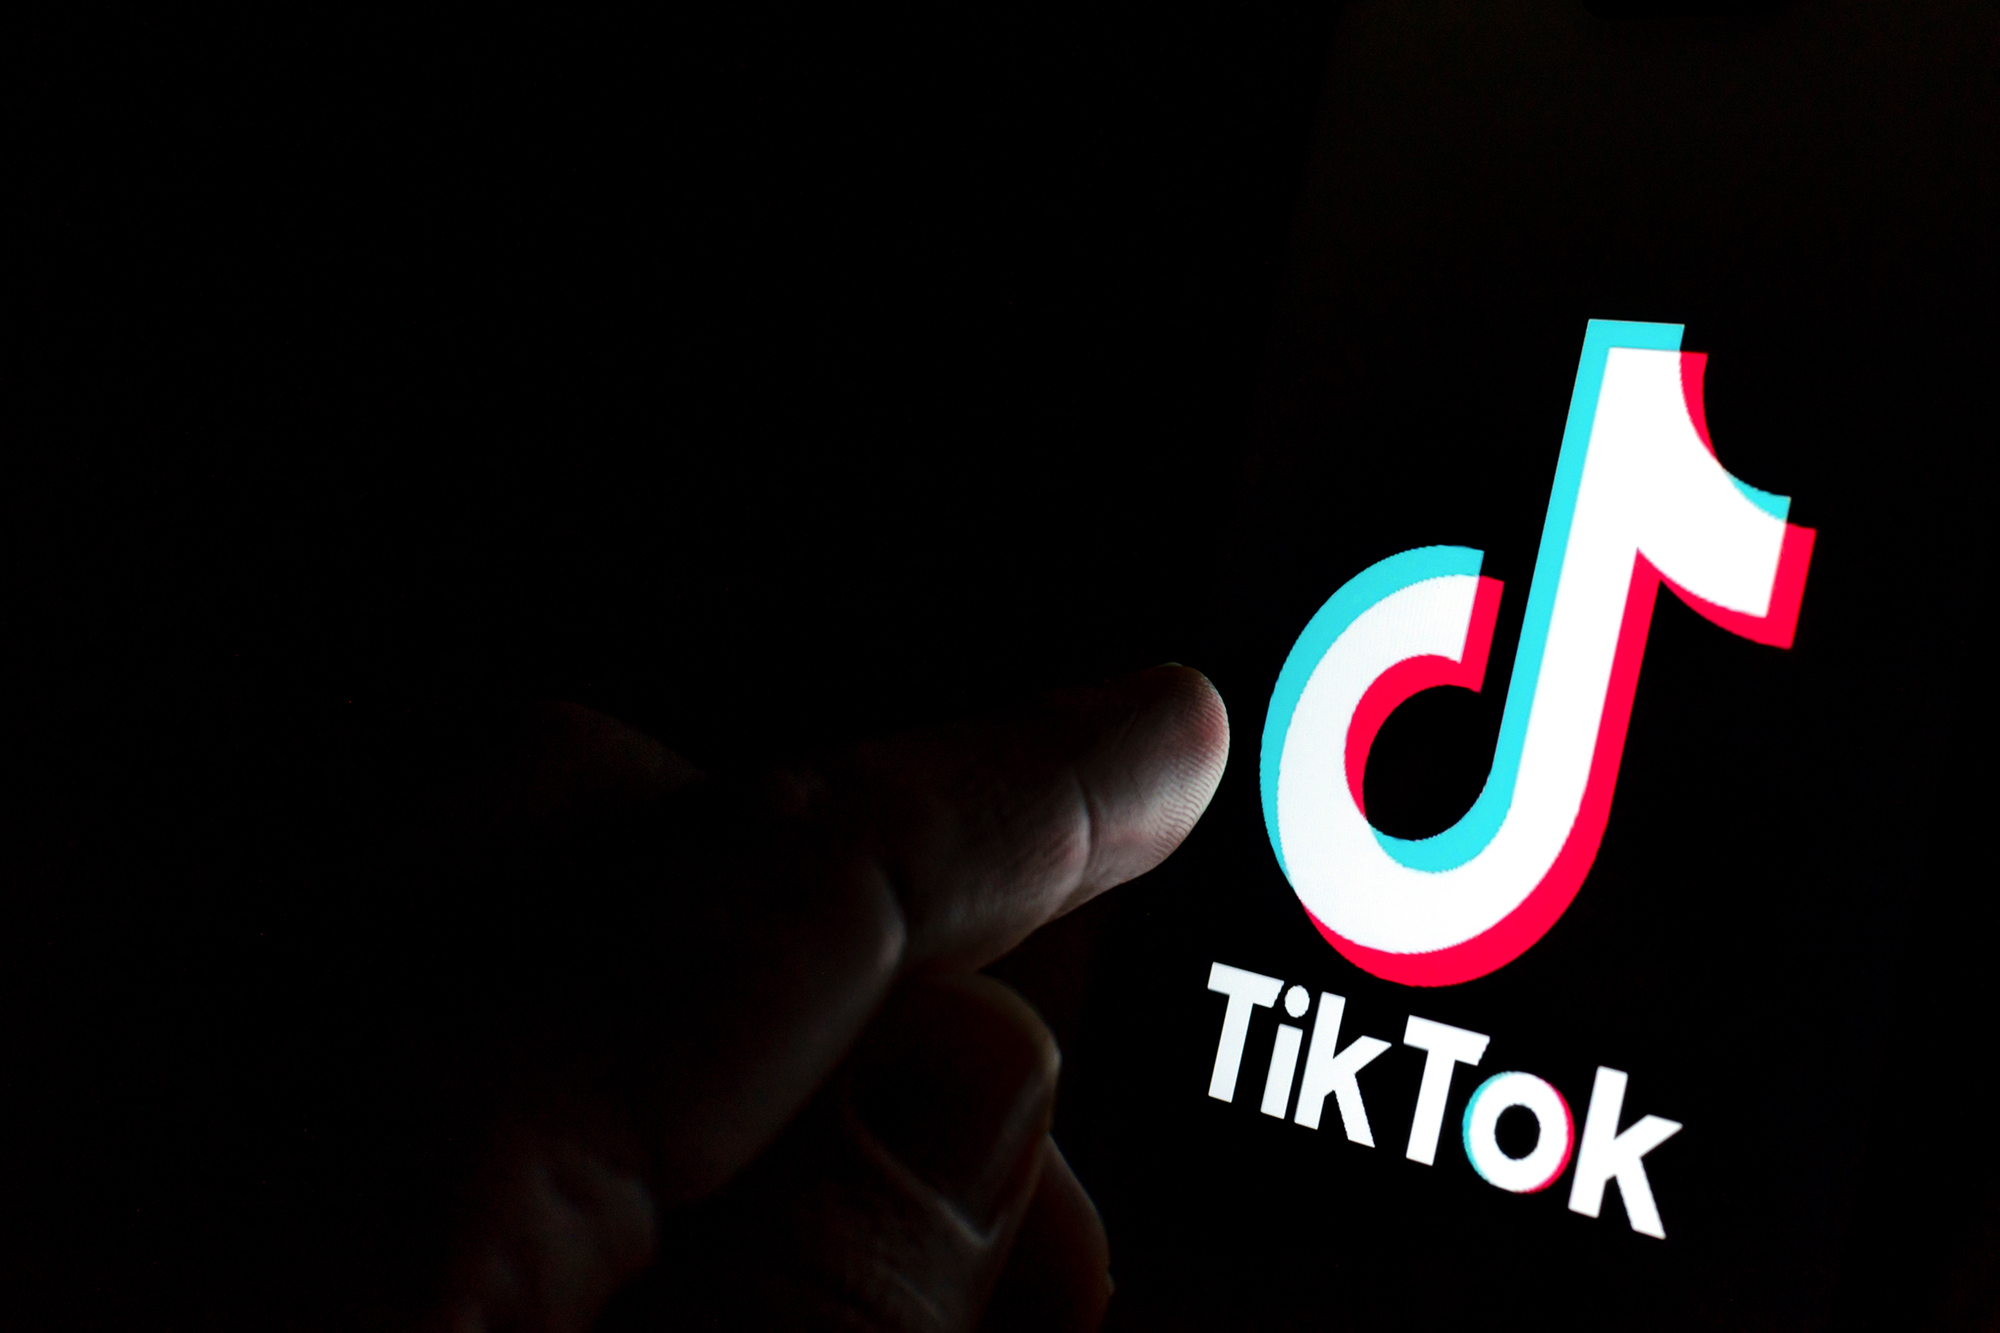 Nazi Song Garners Over 6 5 Million Views On Tiktok Before Getting Pulled